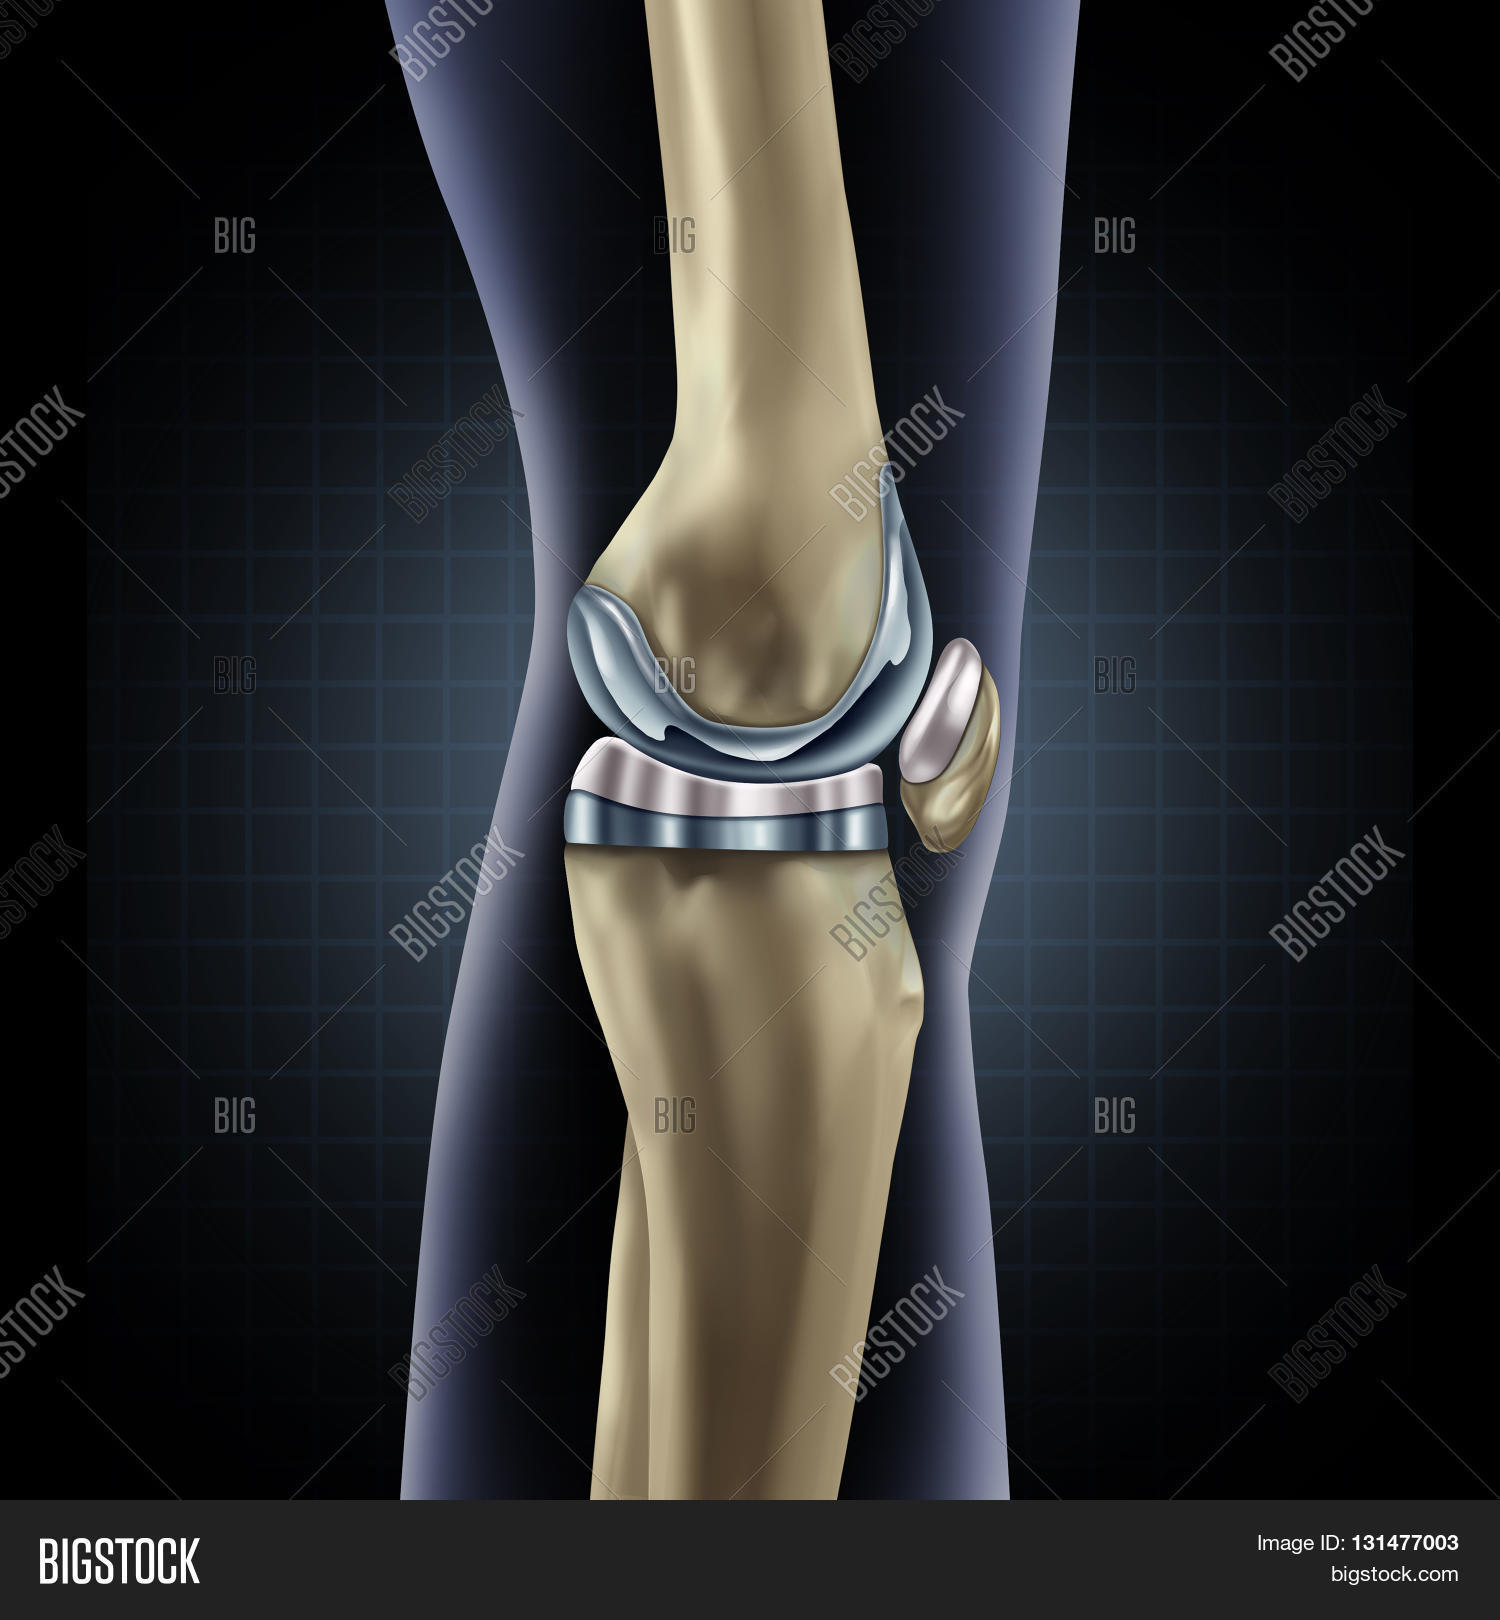 Knee Replacement Image Photo Free Trial Bigstock